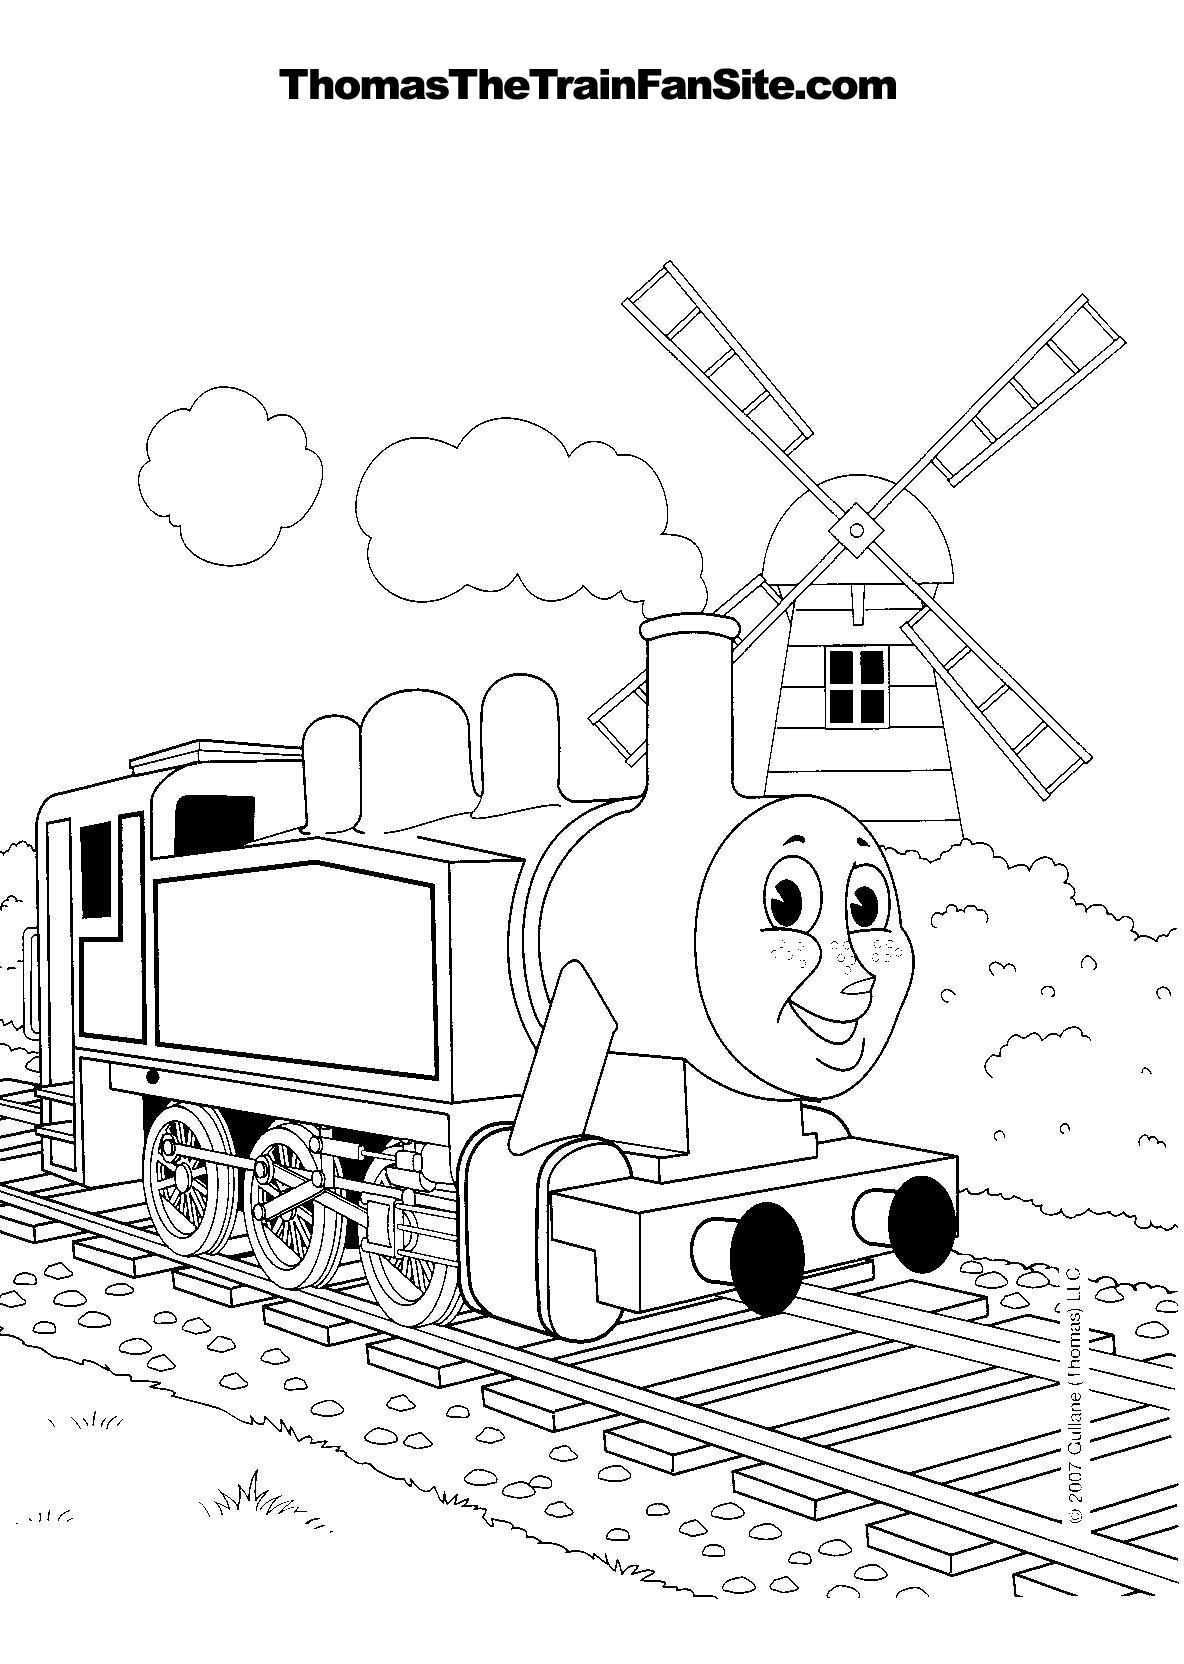 Thomas The Tank Engine Train Coloring Pages Sheets Train Coloring Pages Coloring Books Coloring Pages